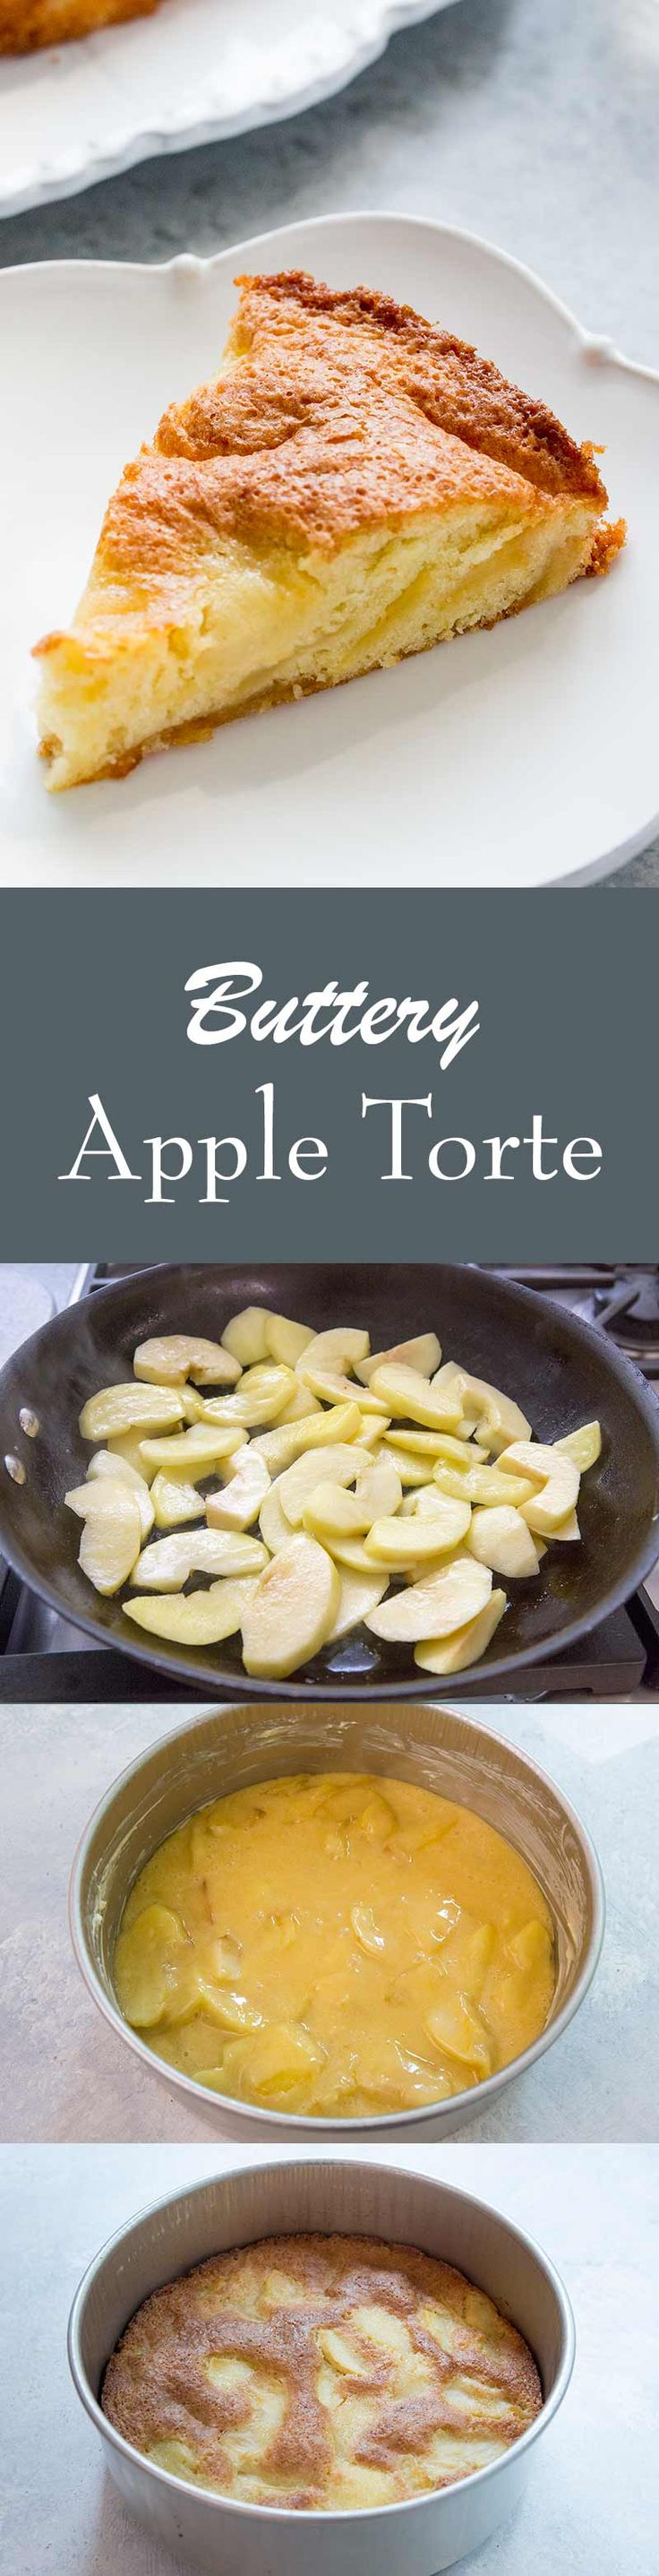 Buttery Italian Apple Torte! This light single layer cake is filled with apple slices that have been cooked in butter.